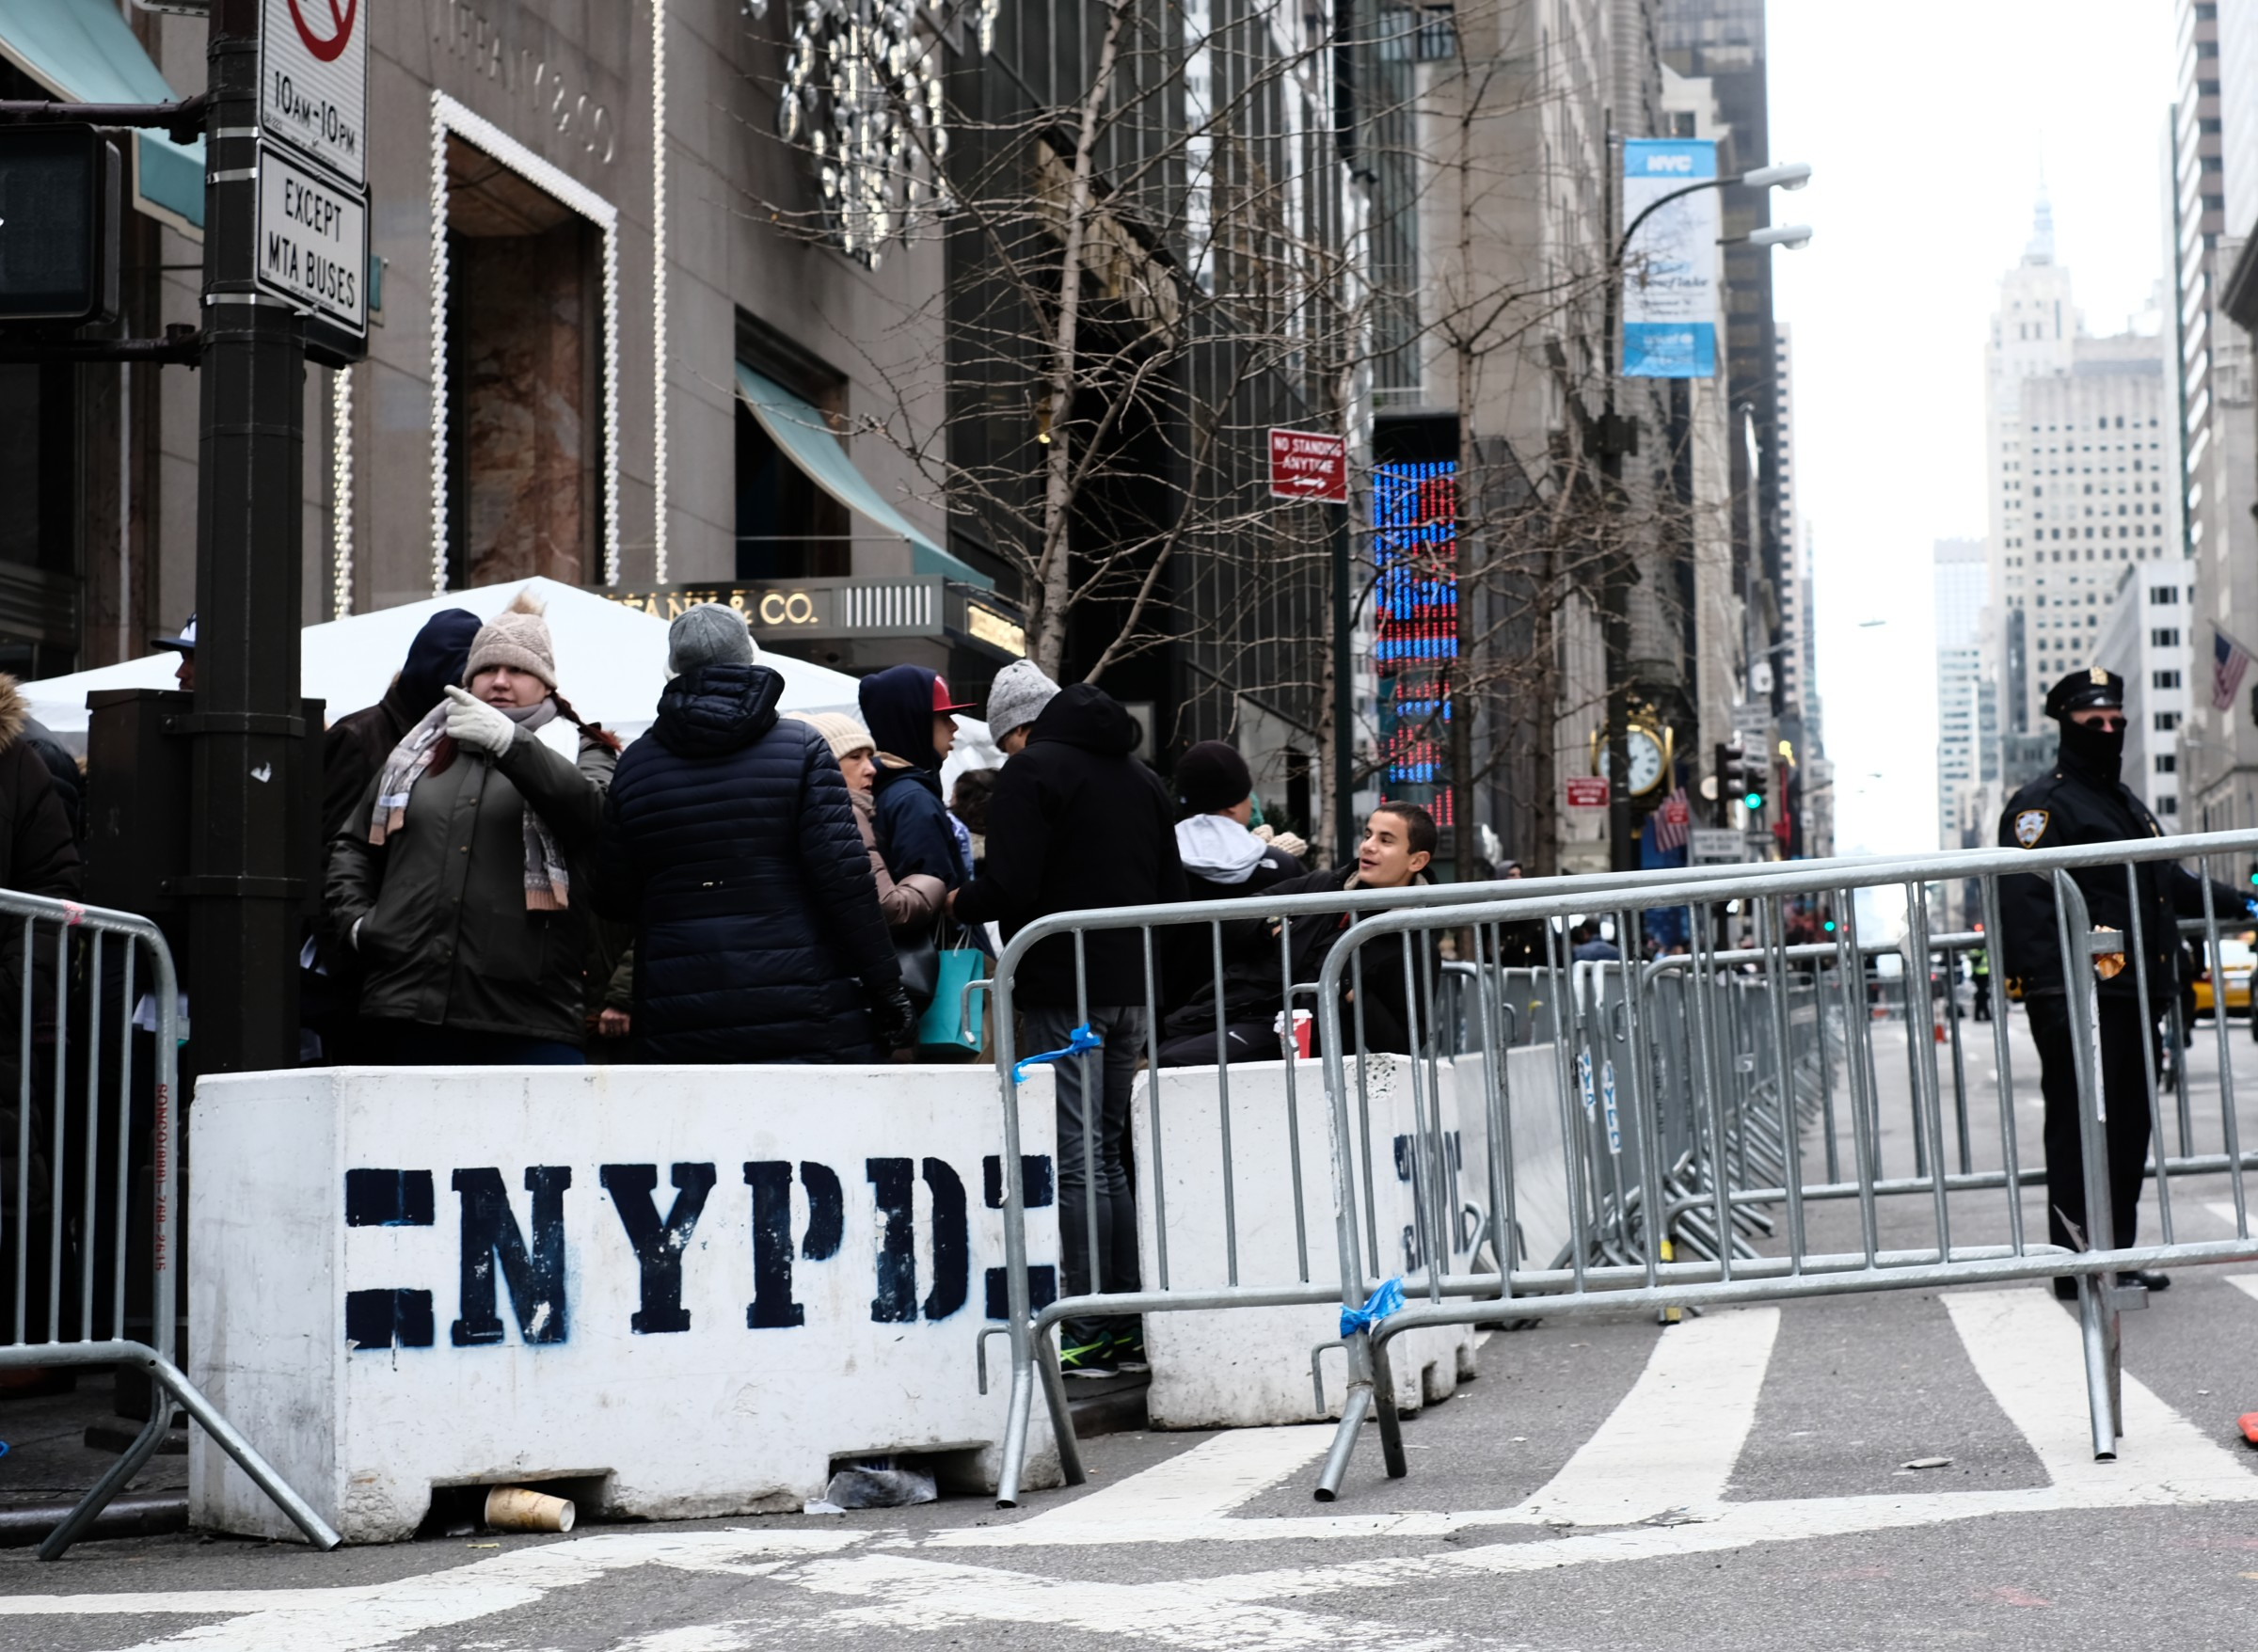 NYPD crowd control at Trump Tower